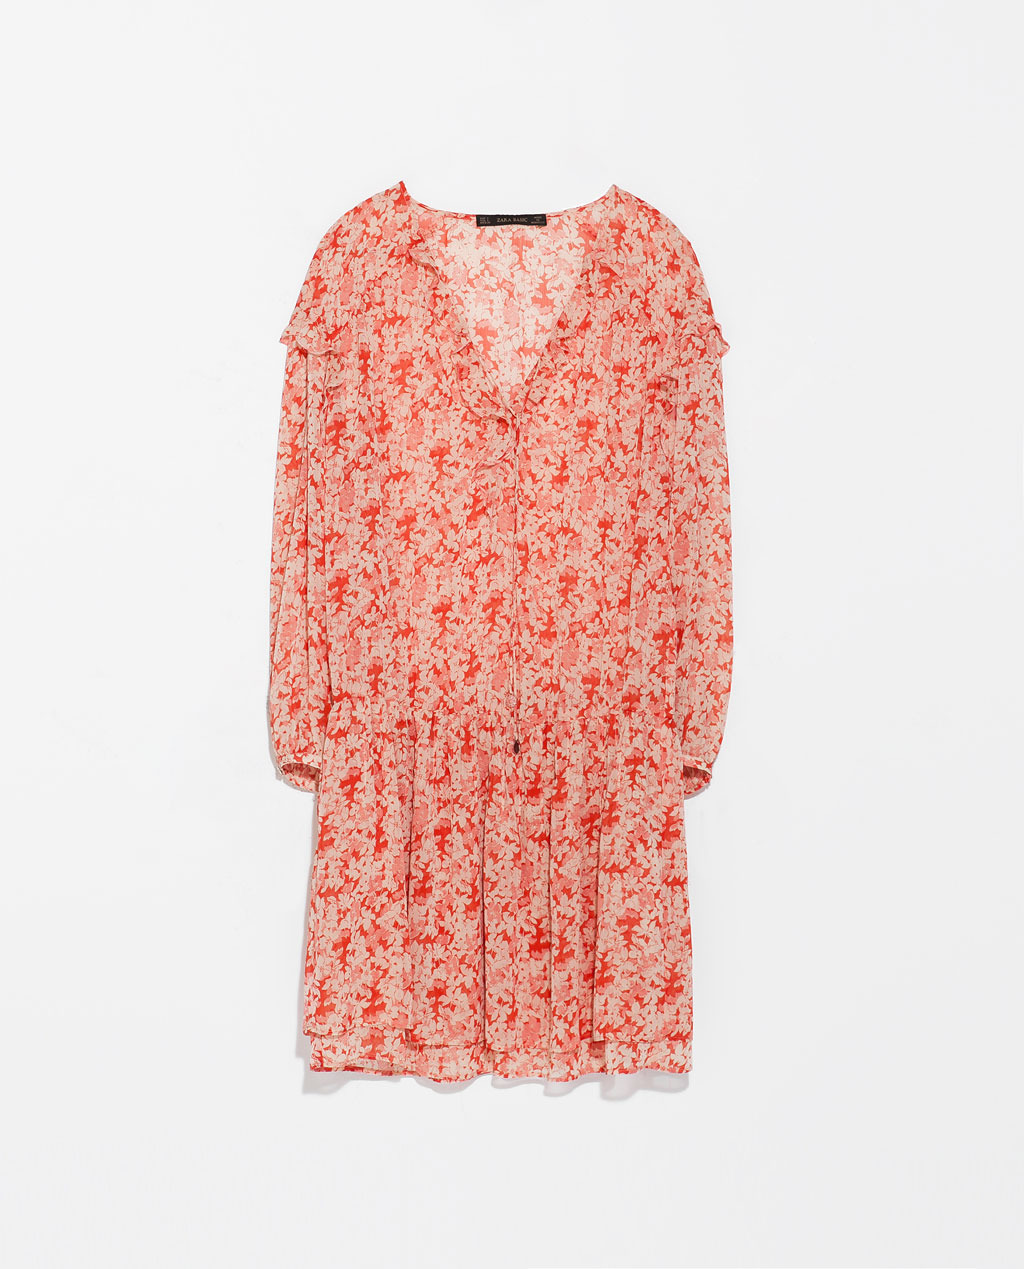 V Neck Dress - length: mid thigh; neckline: low v-neck; fit: loose; style: blouson; waist detail: elasticated waist; predominant colour: pink; secondary colour: coral; occasions: casual, holiday, creative work; fibres: polyester/polyamide - 100%; hip detail: soft pleats at hip/draping at hip/flared at hip; sleeve length: long sleeve; sleeve style: standard; texture group: sheer fabrics/chiffon/organza etc.; pattern type: fabric; pattern size: standard; pattern: patterned/print; season: s/s 2014